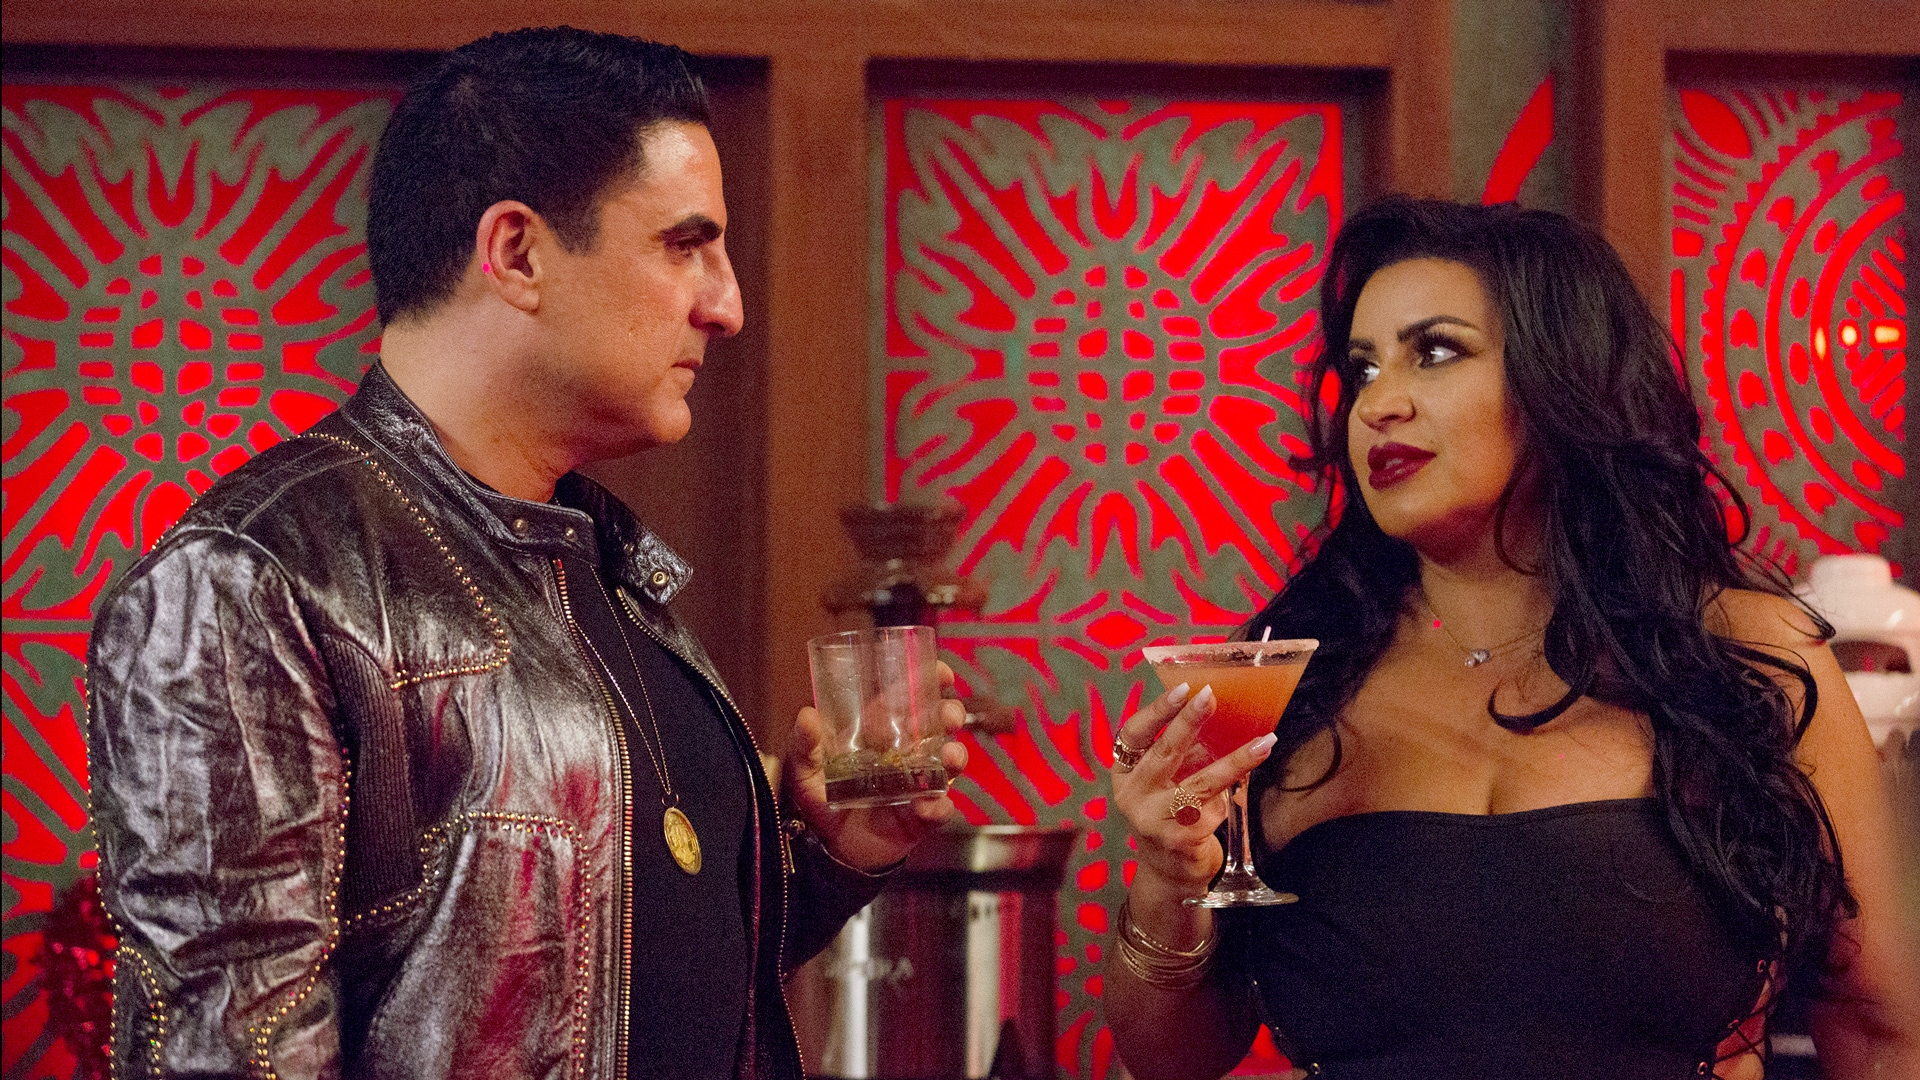 Watch Shahs of Sunset | Peacock